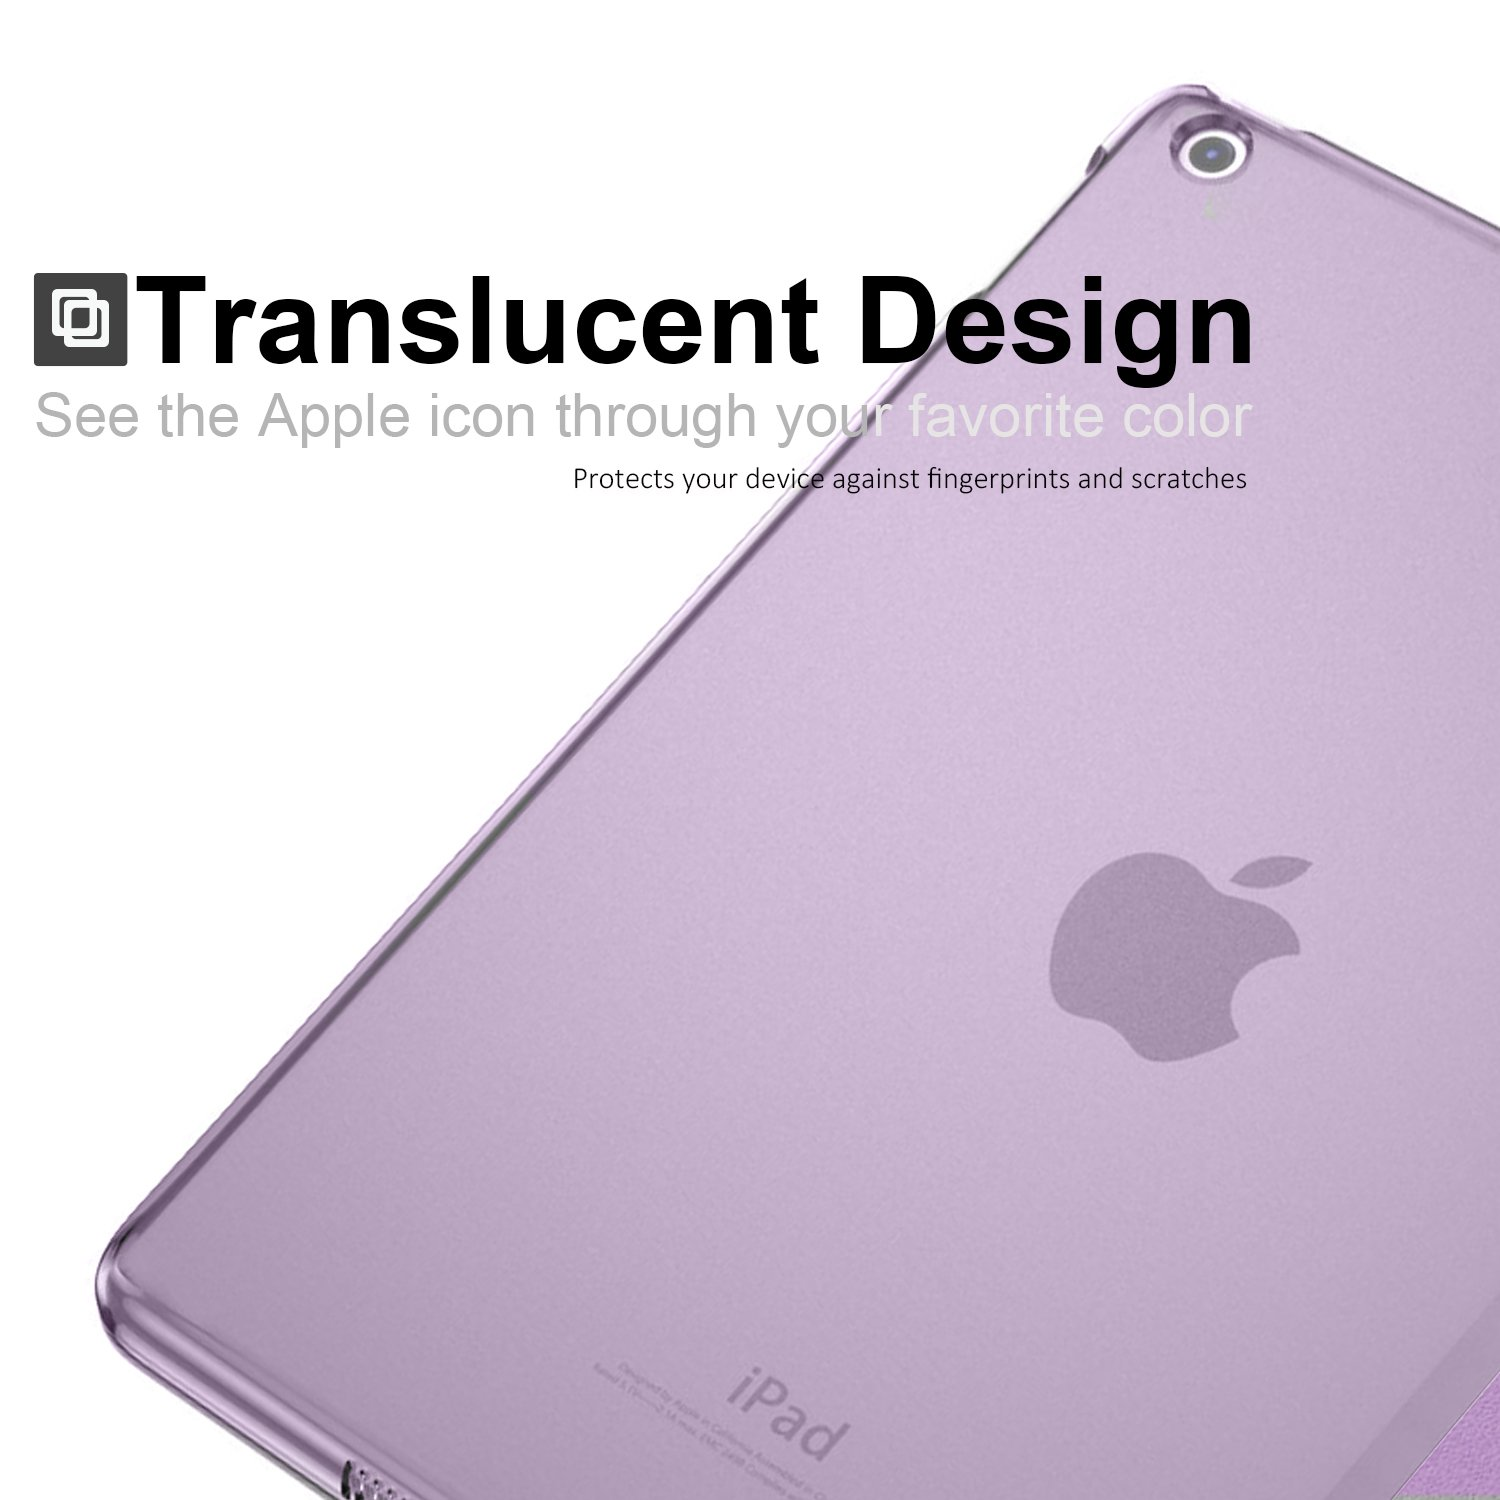 Horizontal and Vertical Display KHOMO iPad 9.7 Inch Transparent Back Case DUAL ORIGAMI Hybrid Series Rose Gold 2017 /& 2018